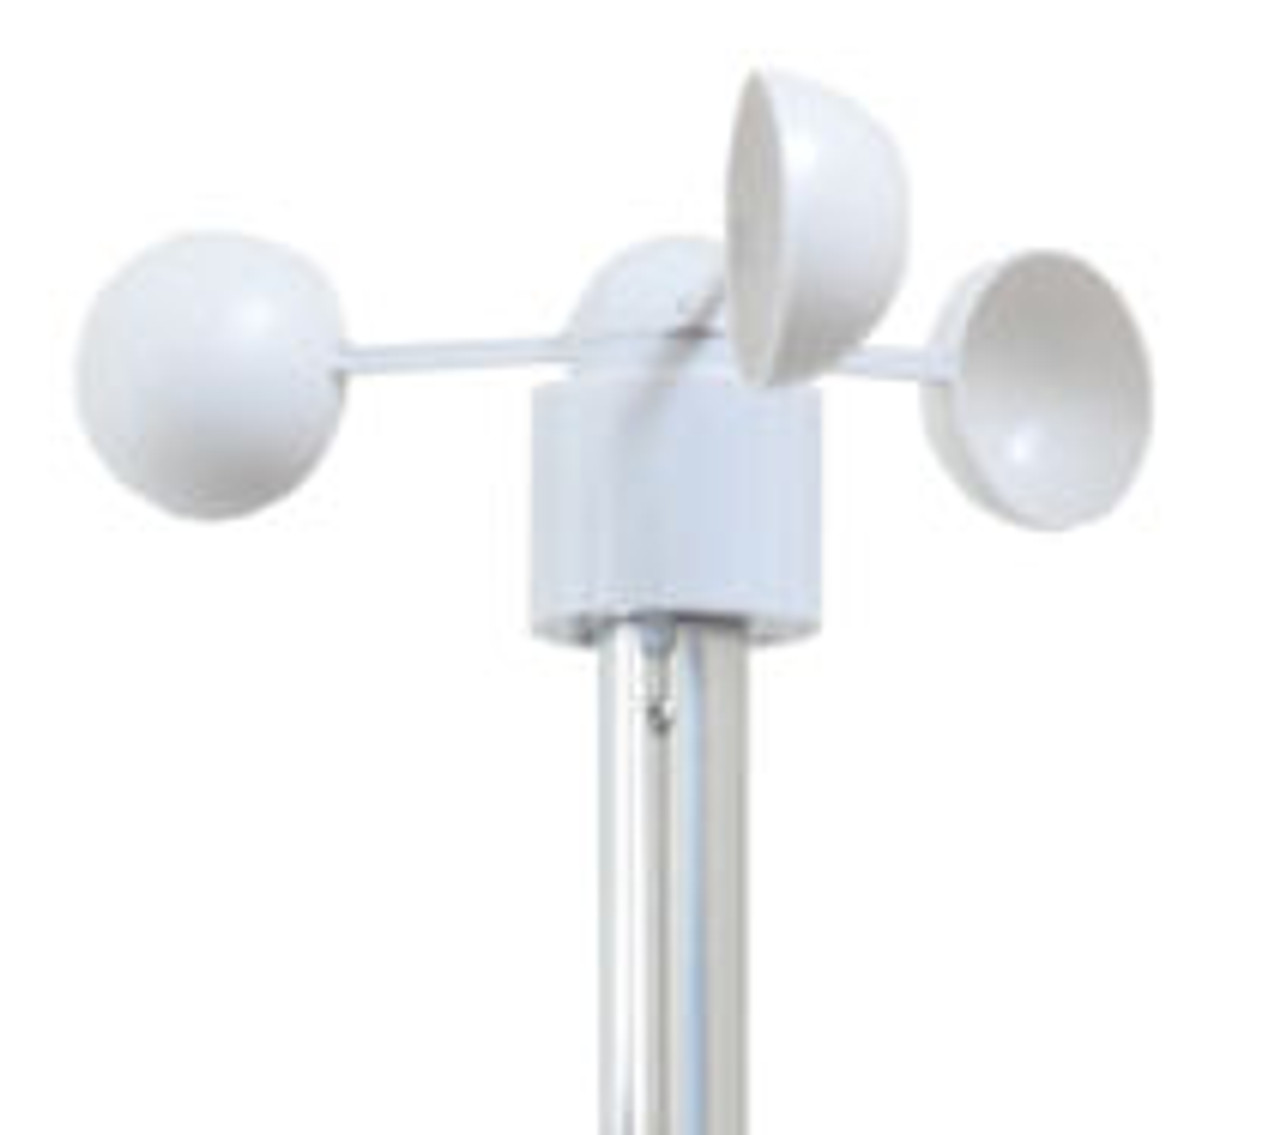 Wind Anemometer Cups for WS1093, WS2083, WS3083, WH1081, WS1081, WS1083,